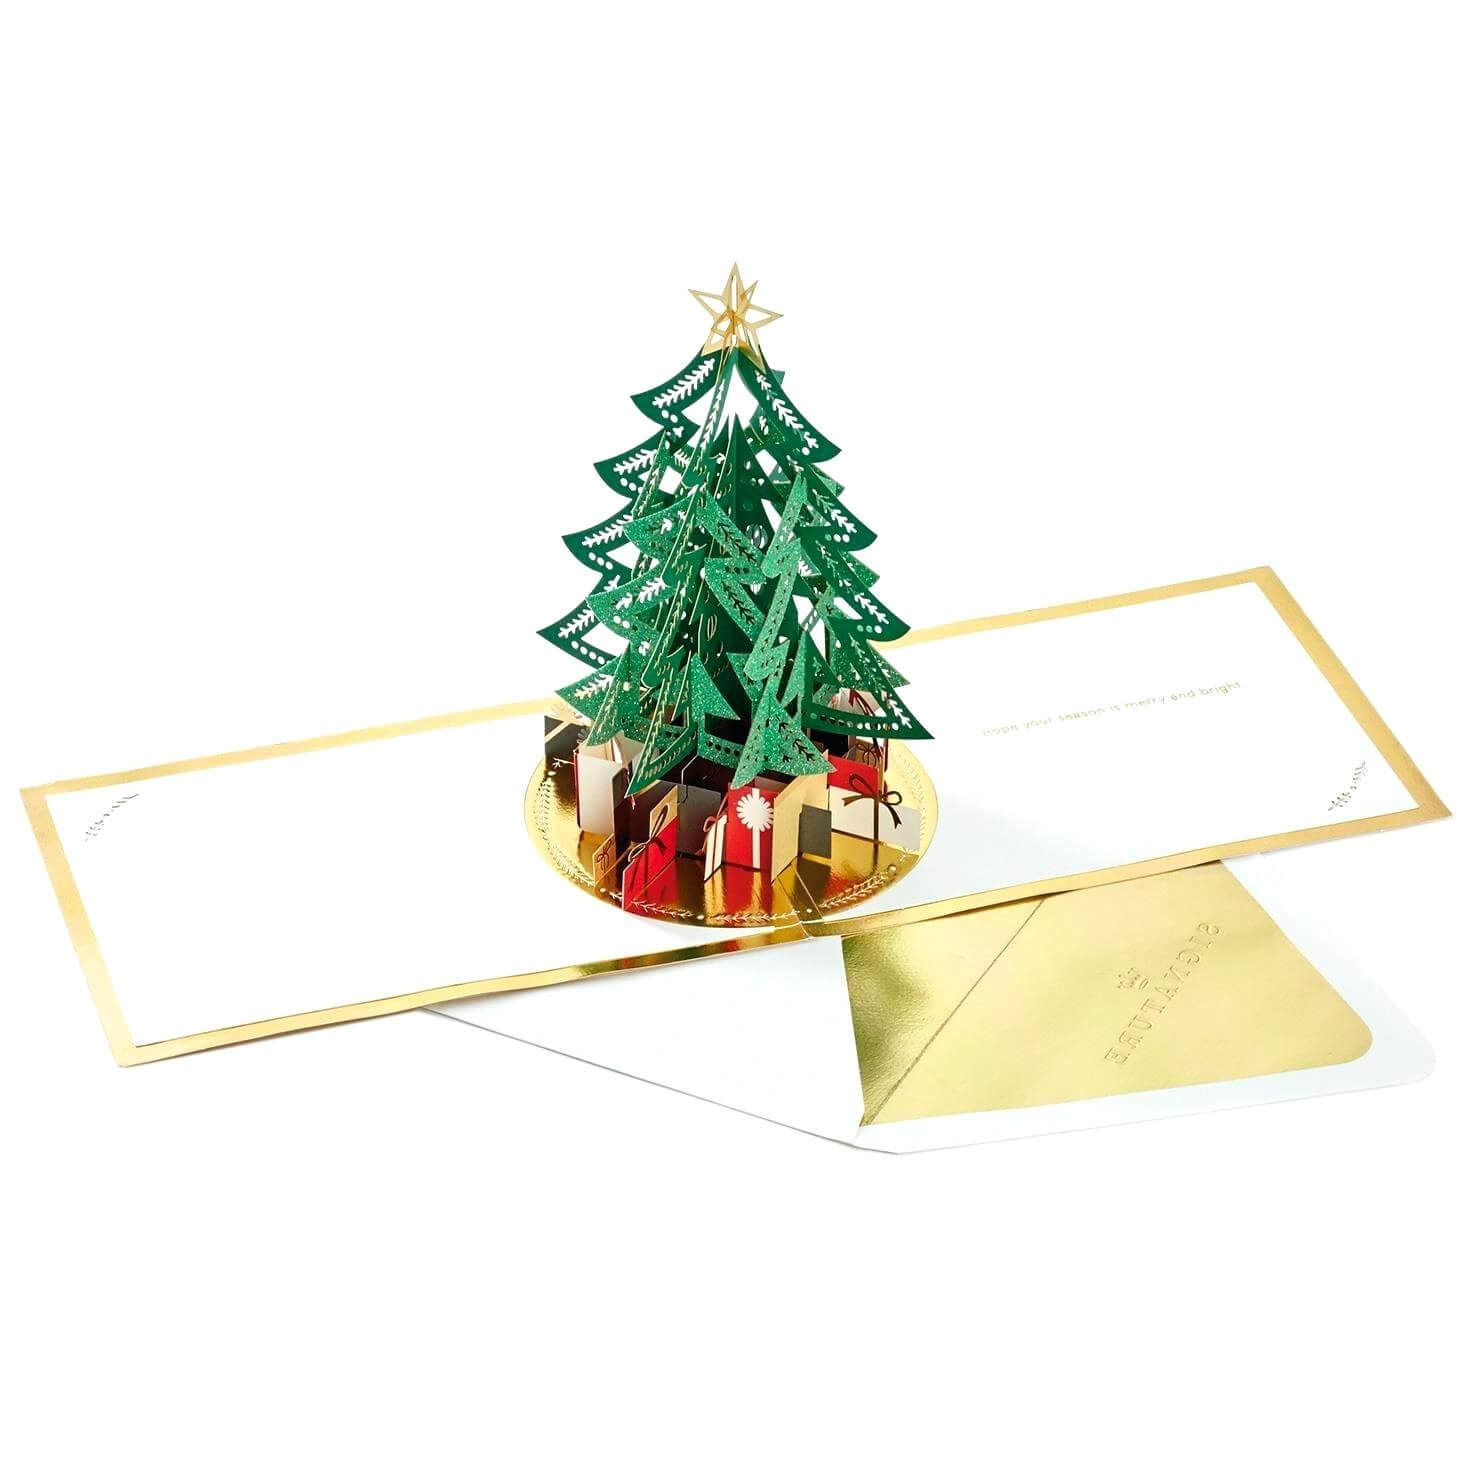 035 Pop Up Cards Templates Free Template Striking Ideas With Pop Up Tree Card Template